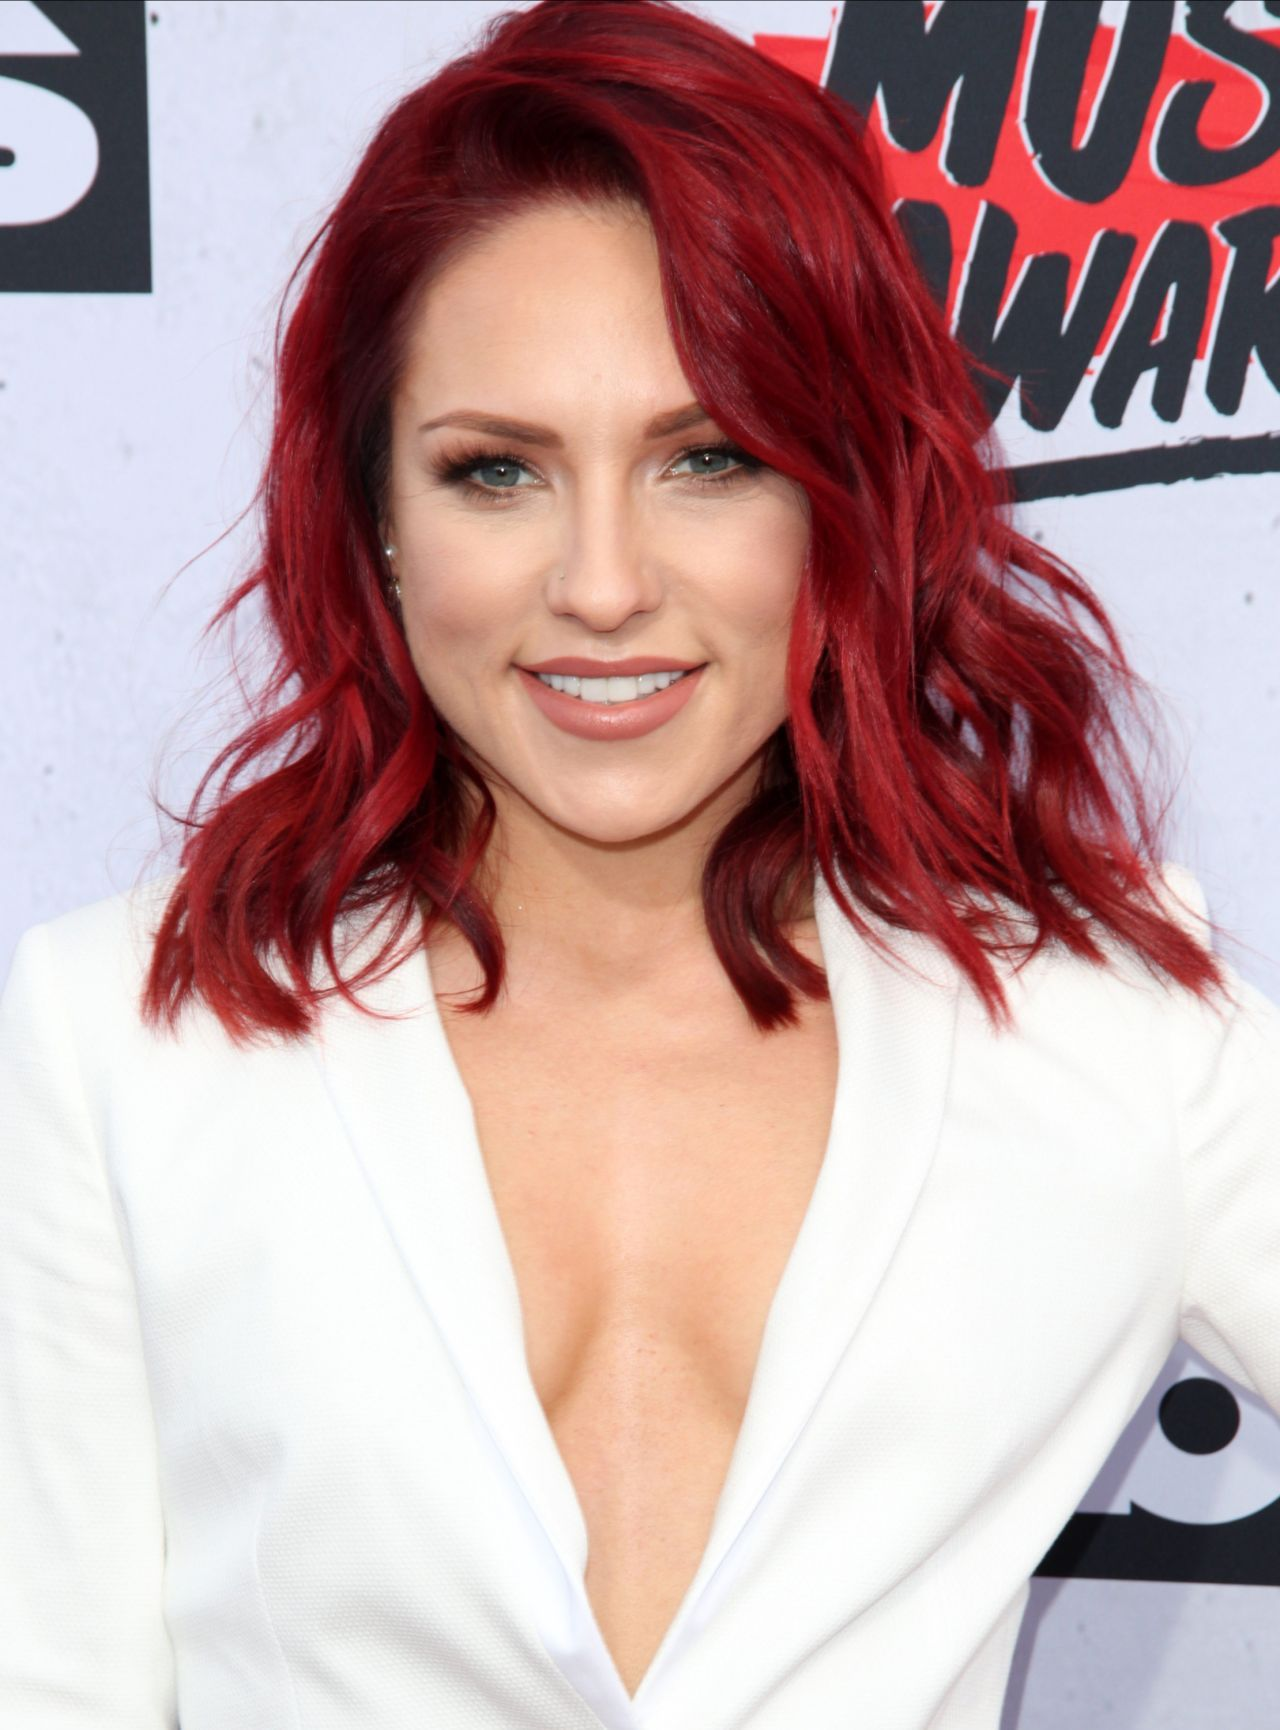 Pictures Sharna Burgess naked (23 photo), Topless, Leaked, Instagram, braless 2006